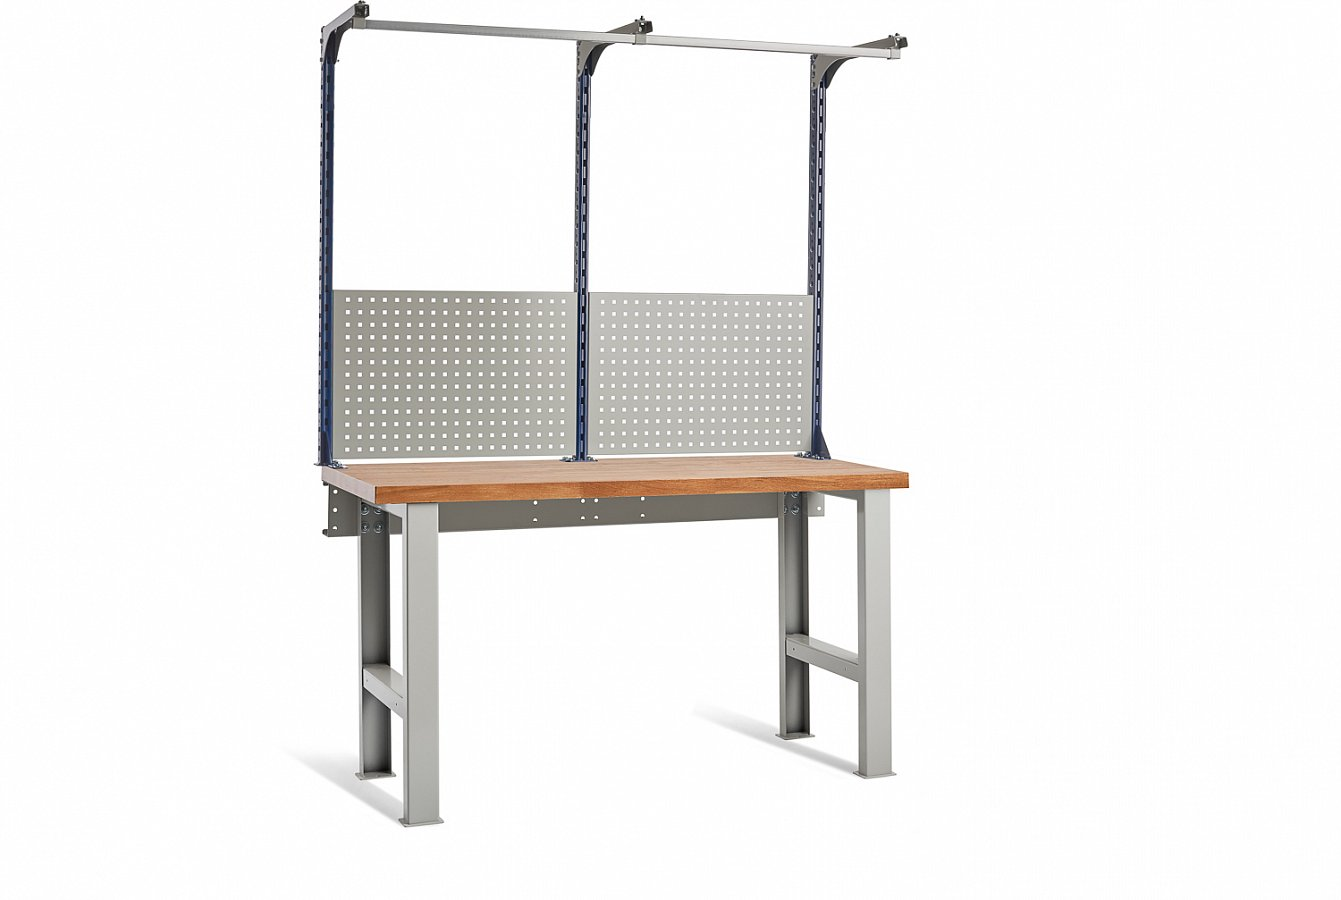 DiKom Workbench VS-150-01